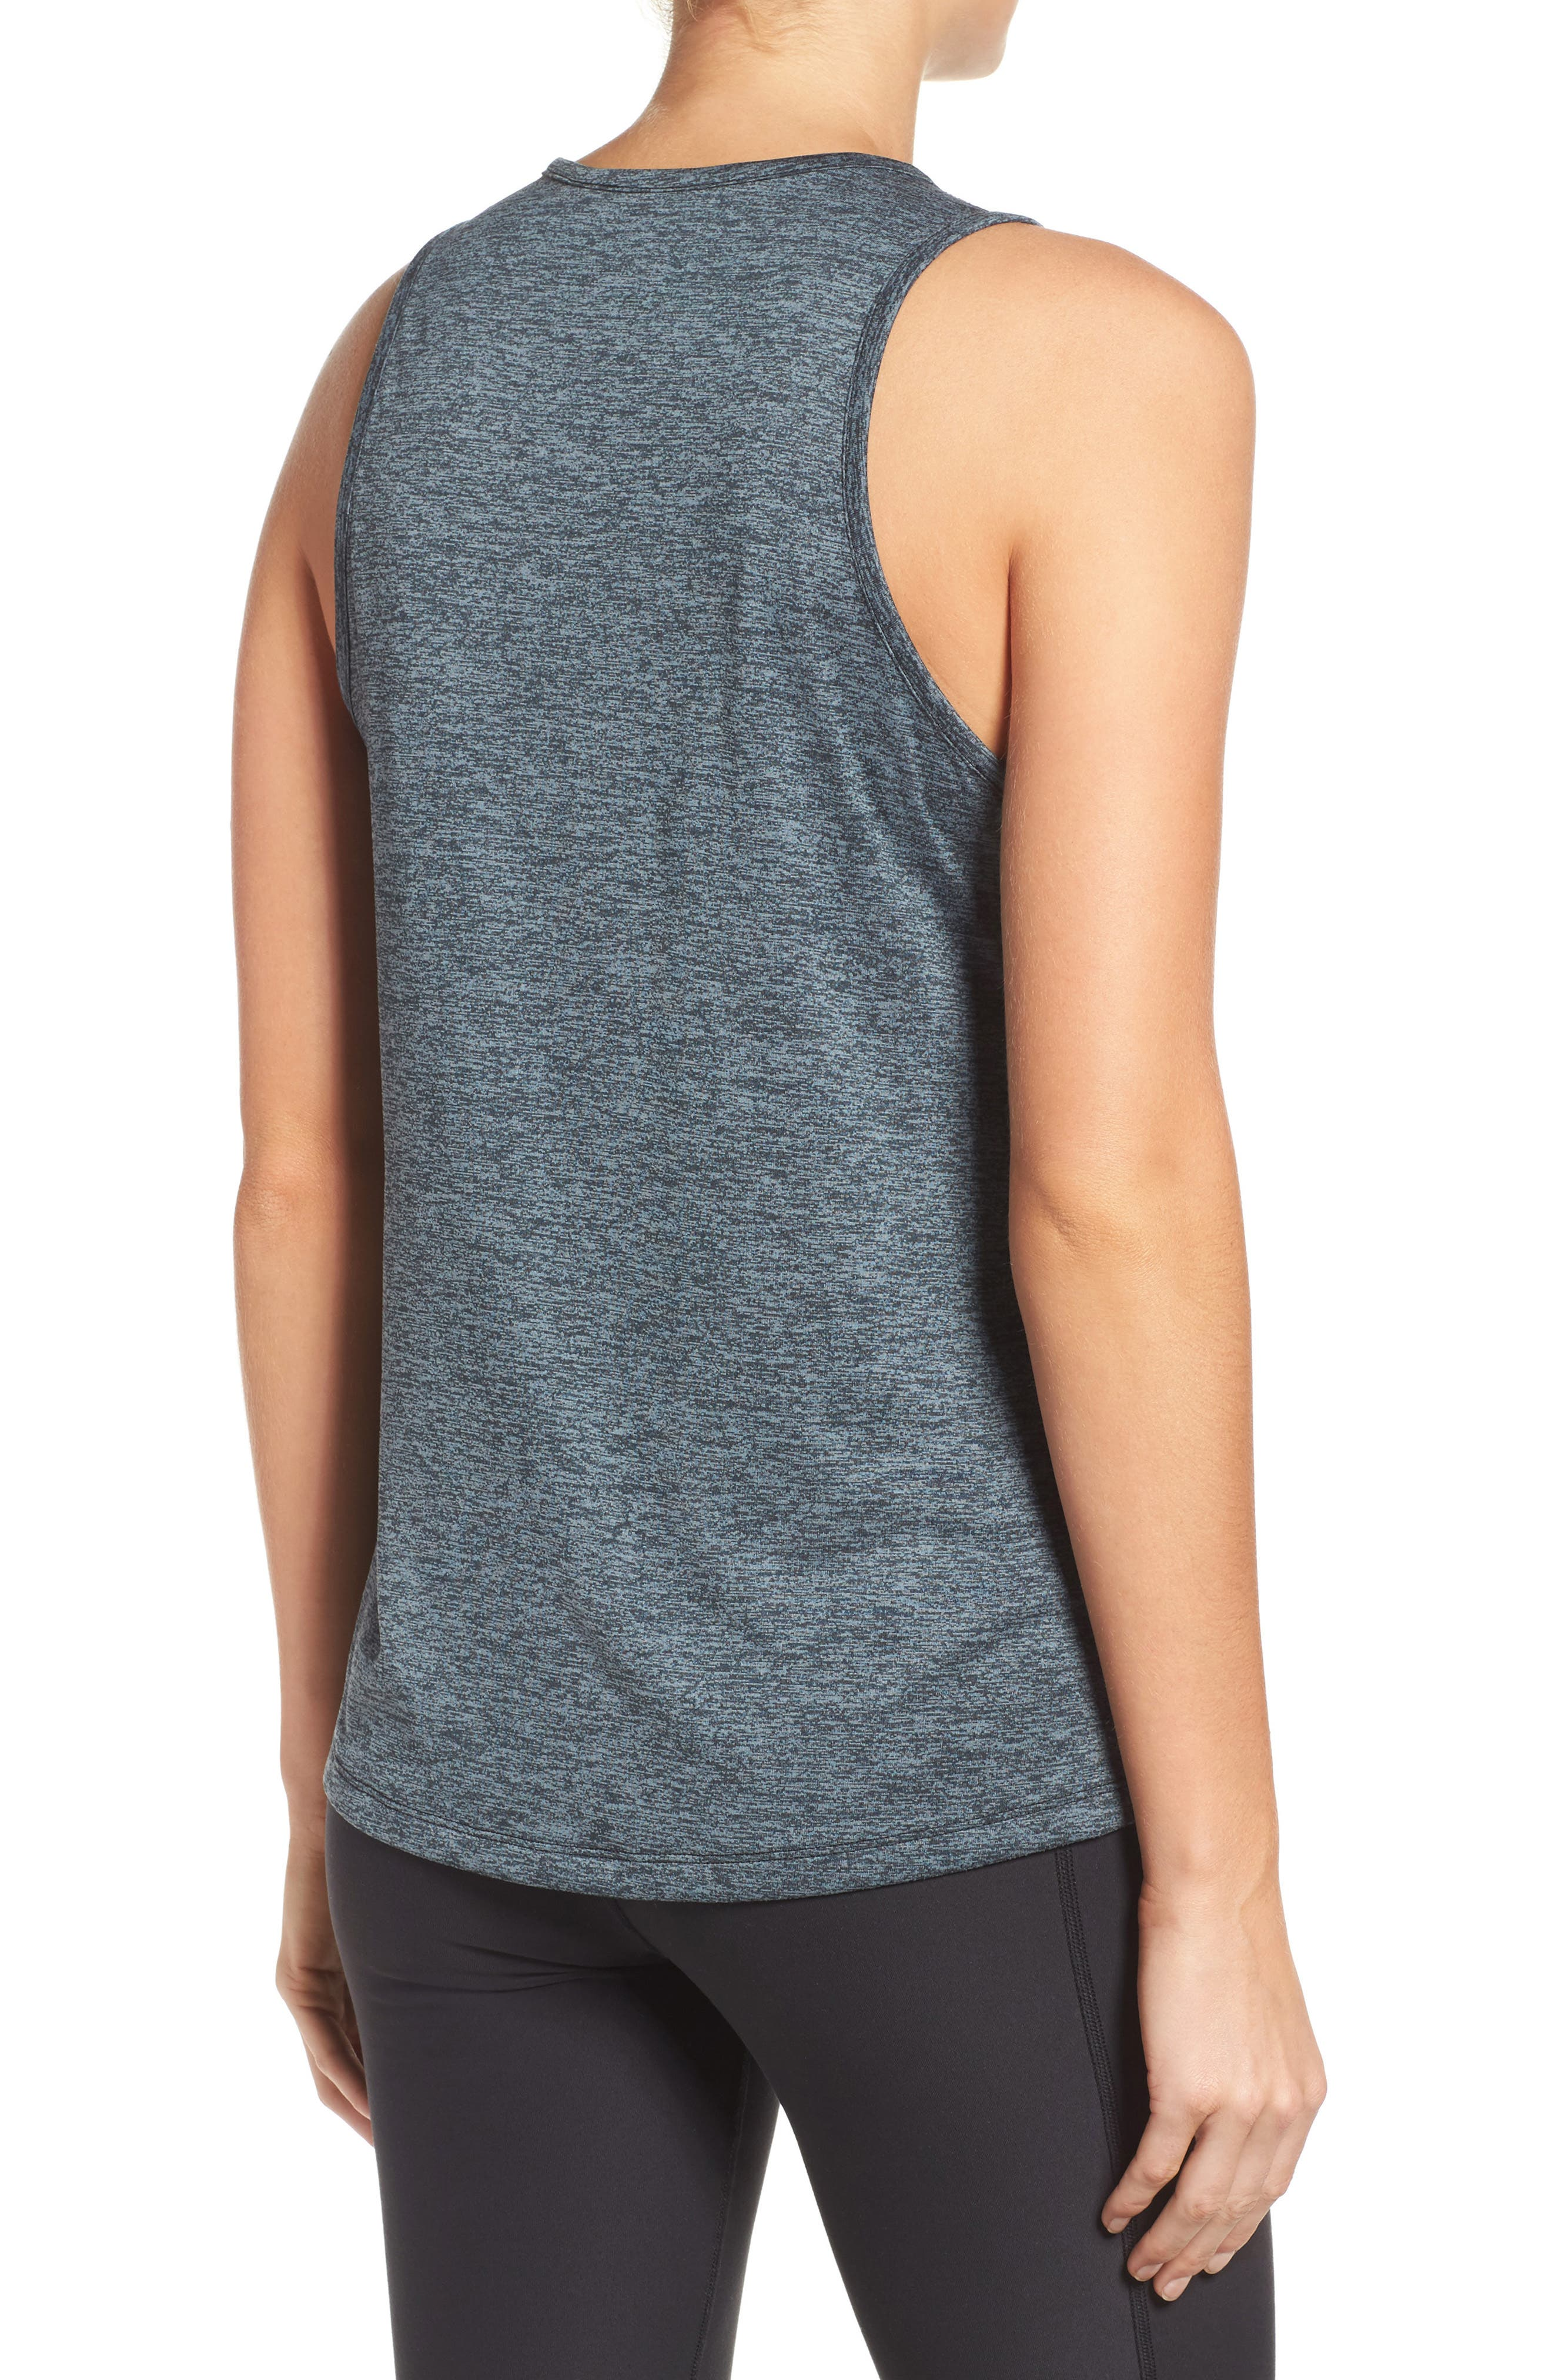 Dry Training Tank,                             Alternate thumbnail 2, color,                             BLACK/ HEATHER/ COOL GREY